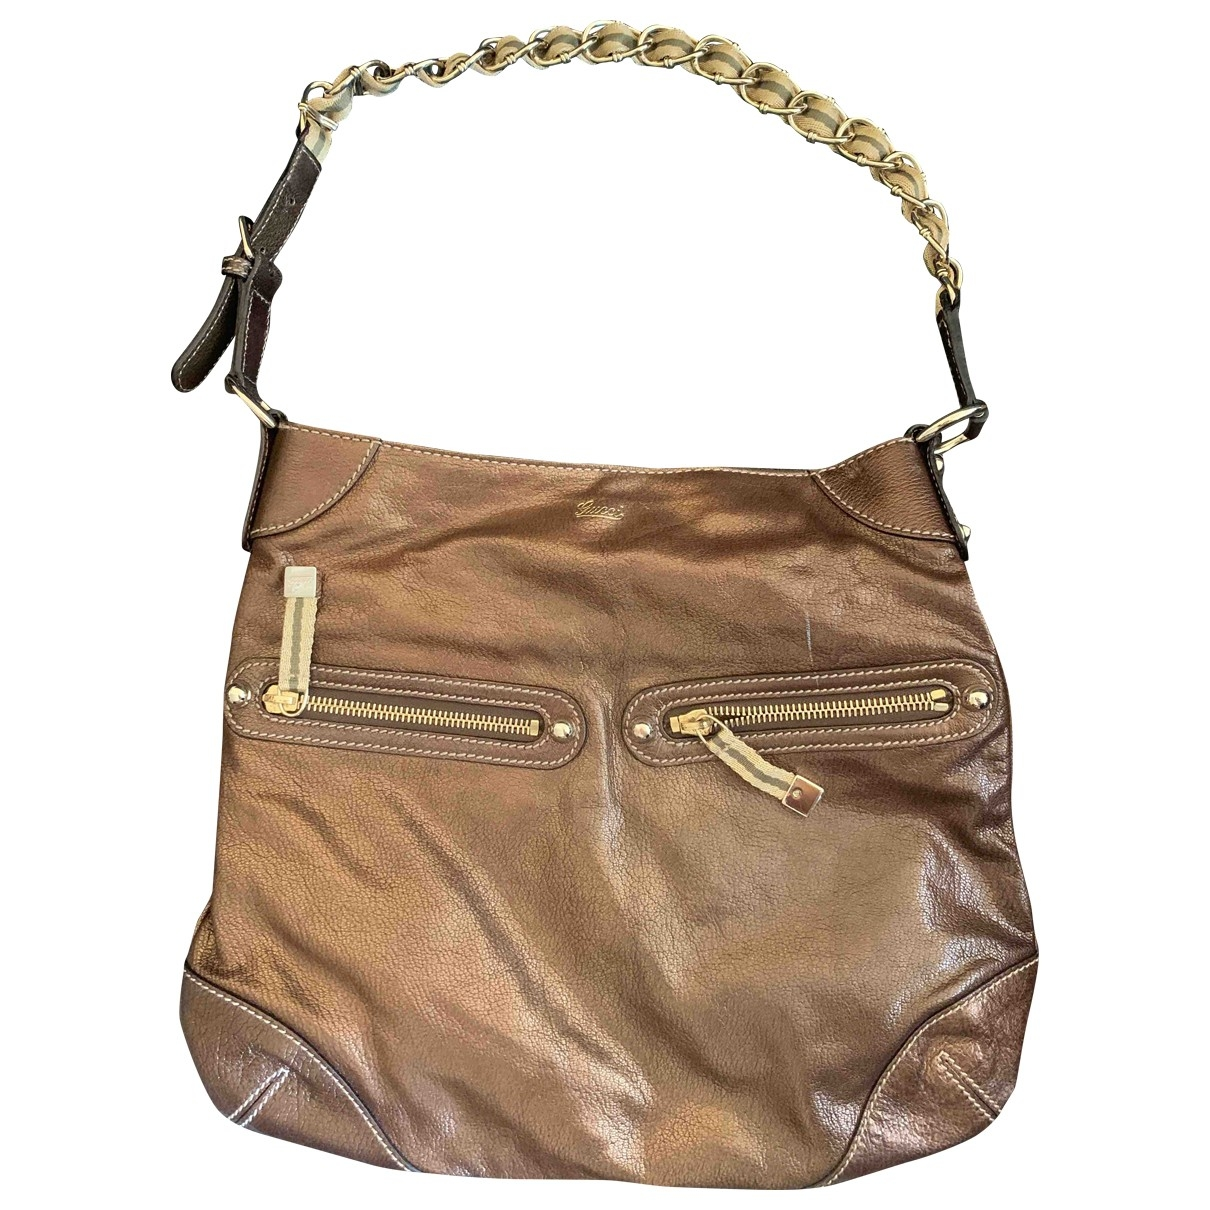 Gucci \N Metallic Leather handbag for Women \N